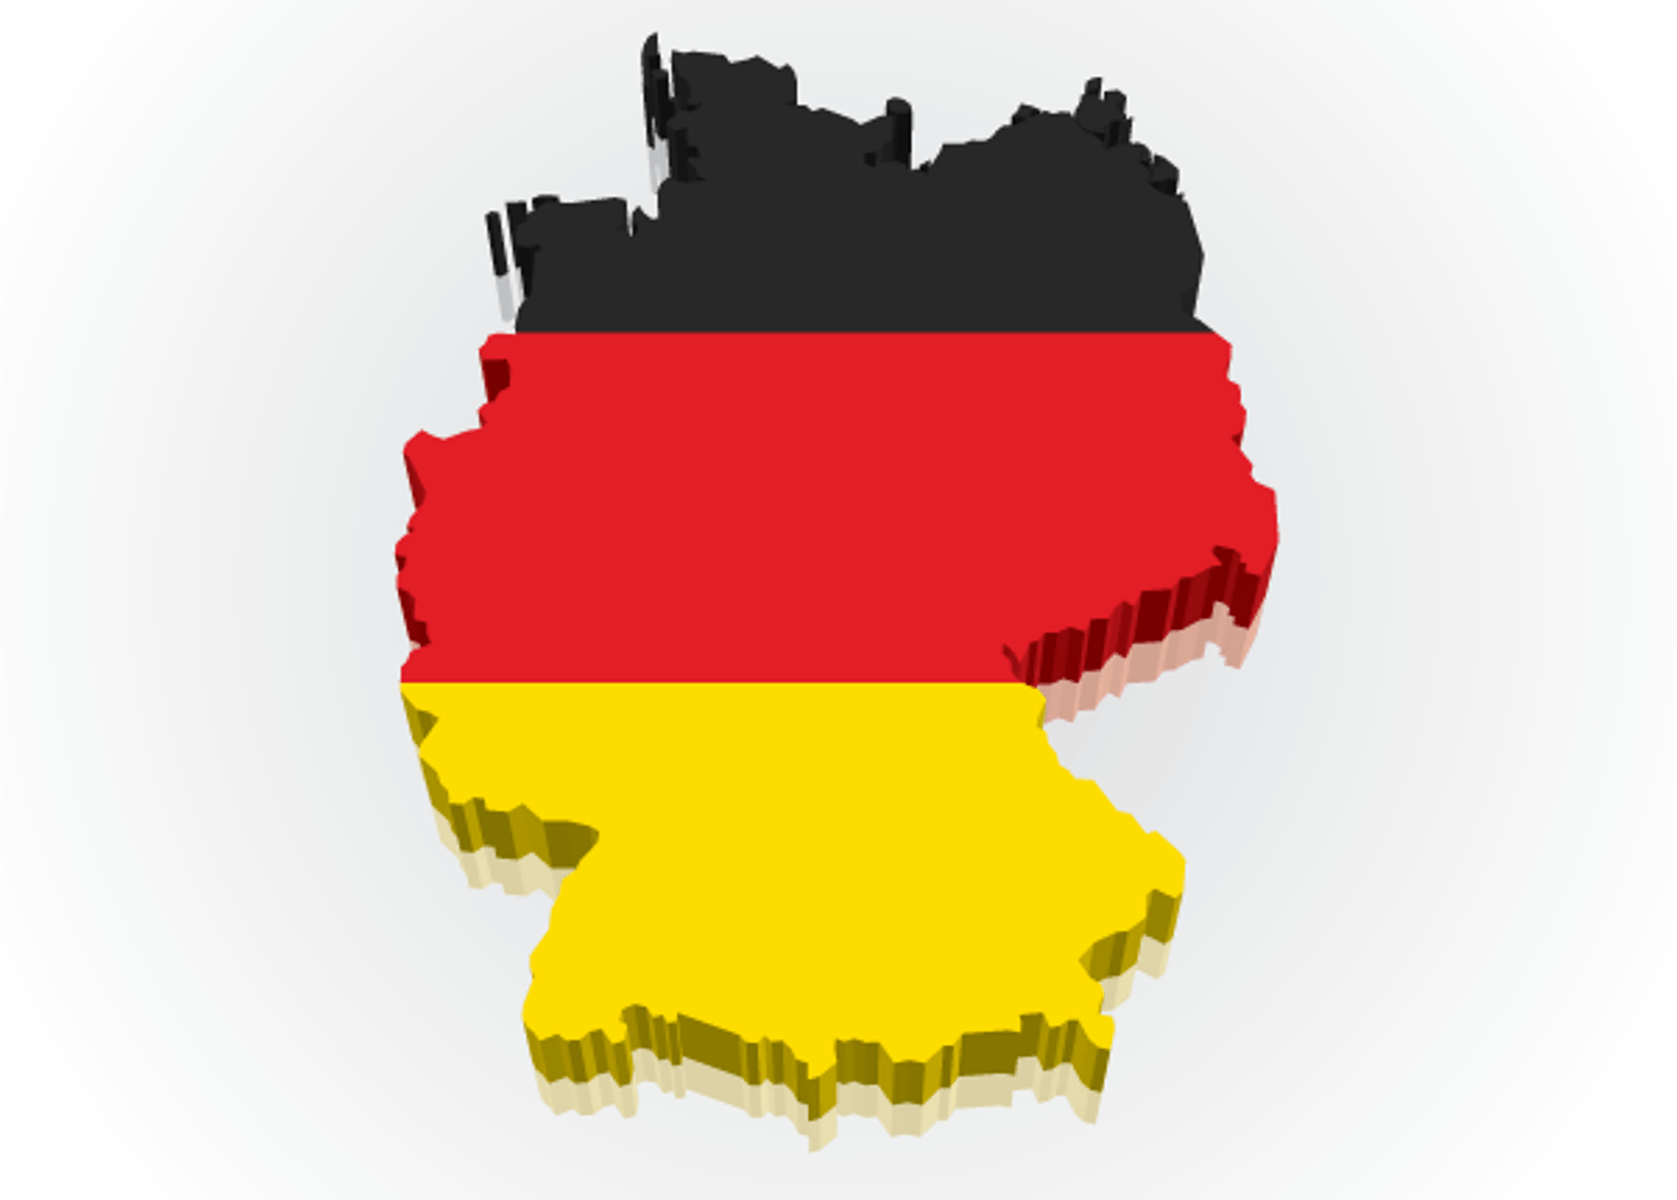 Germany Flag Wallpapers Wallpaper Cave - Germany map hd image